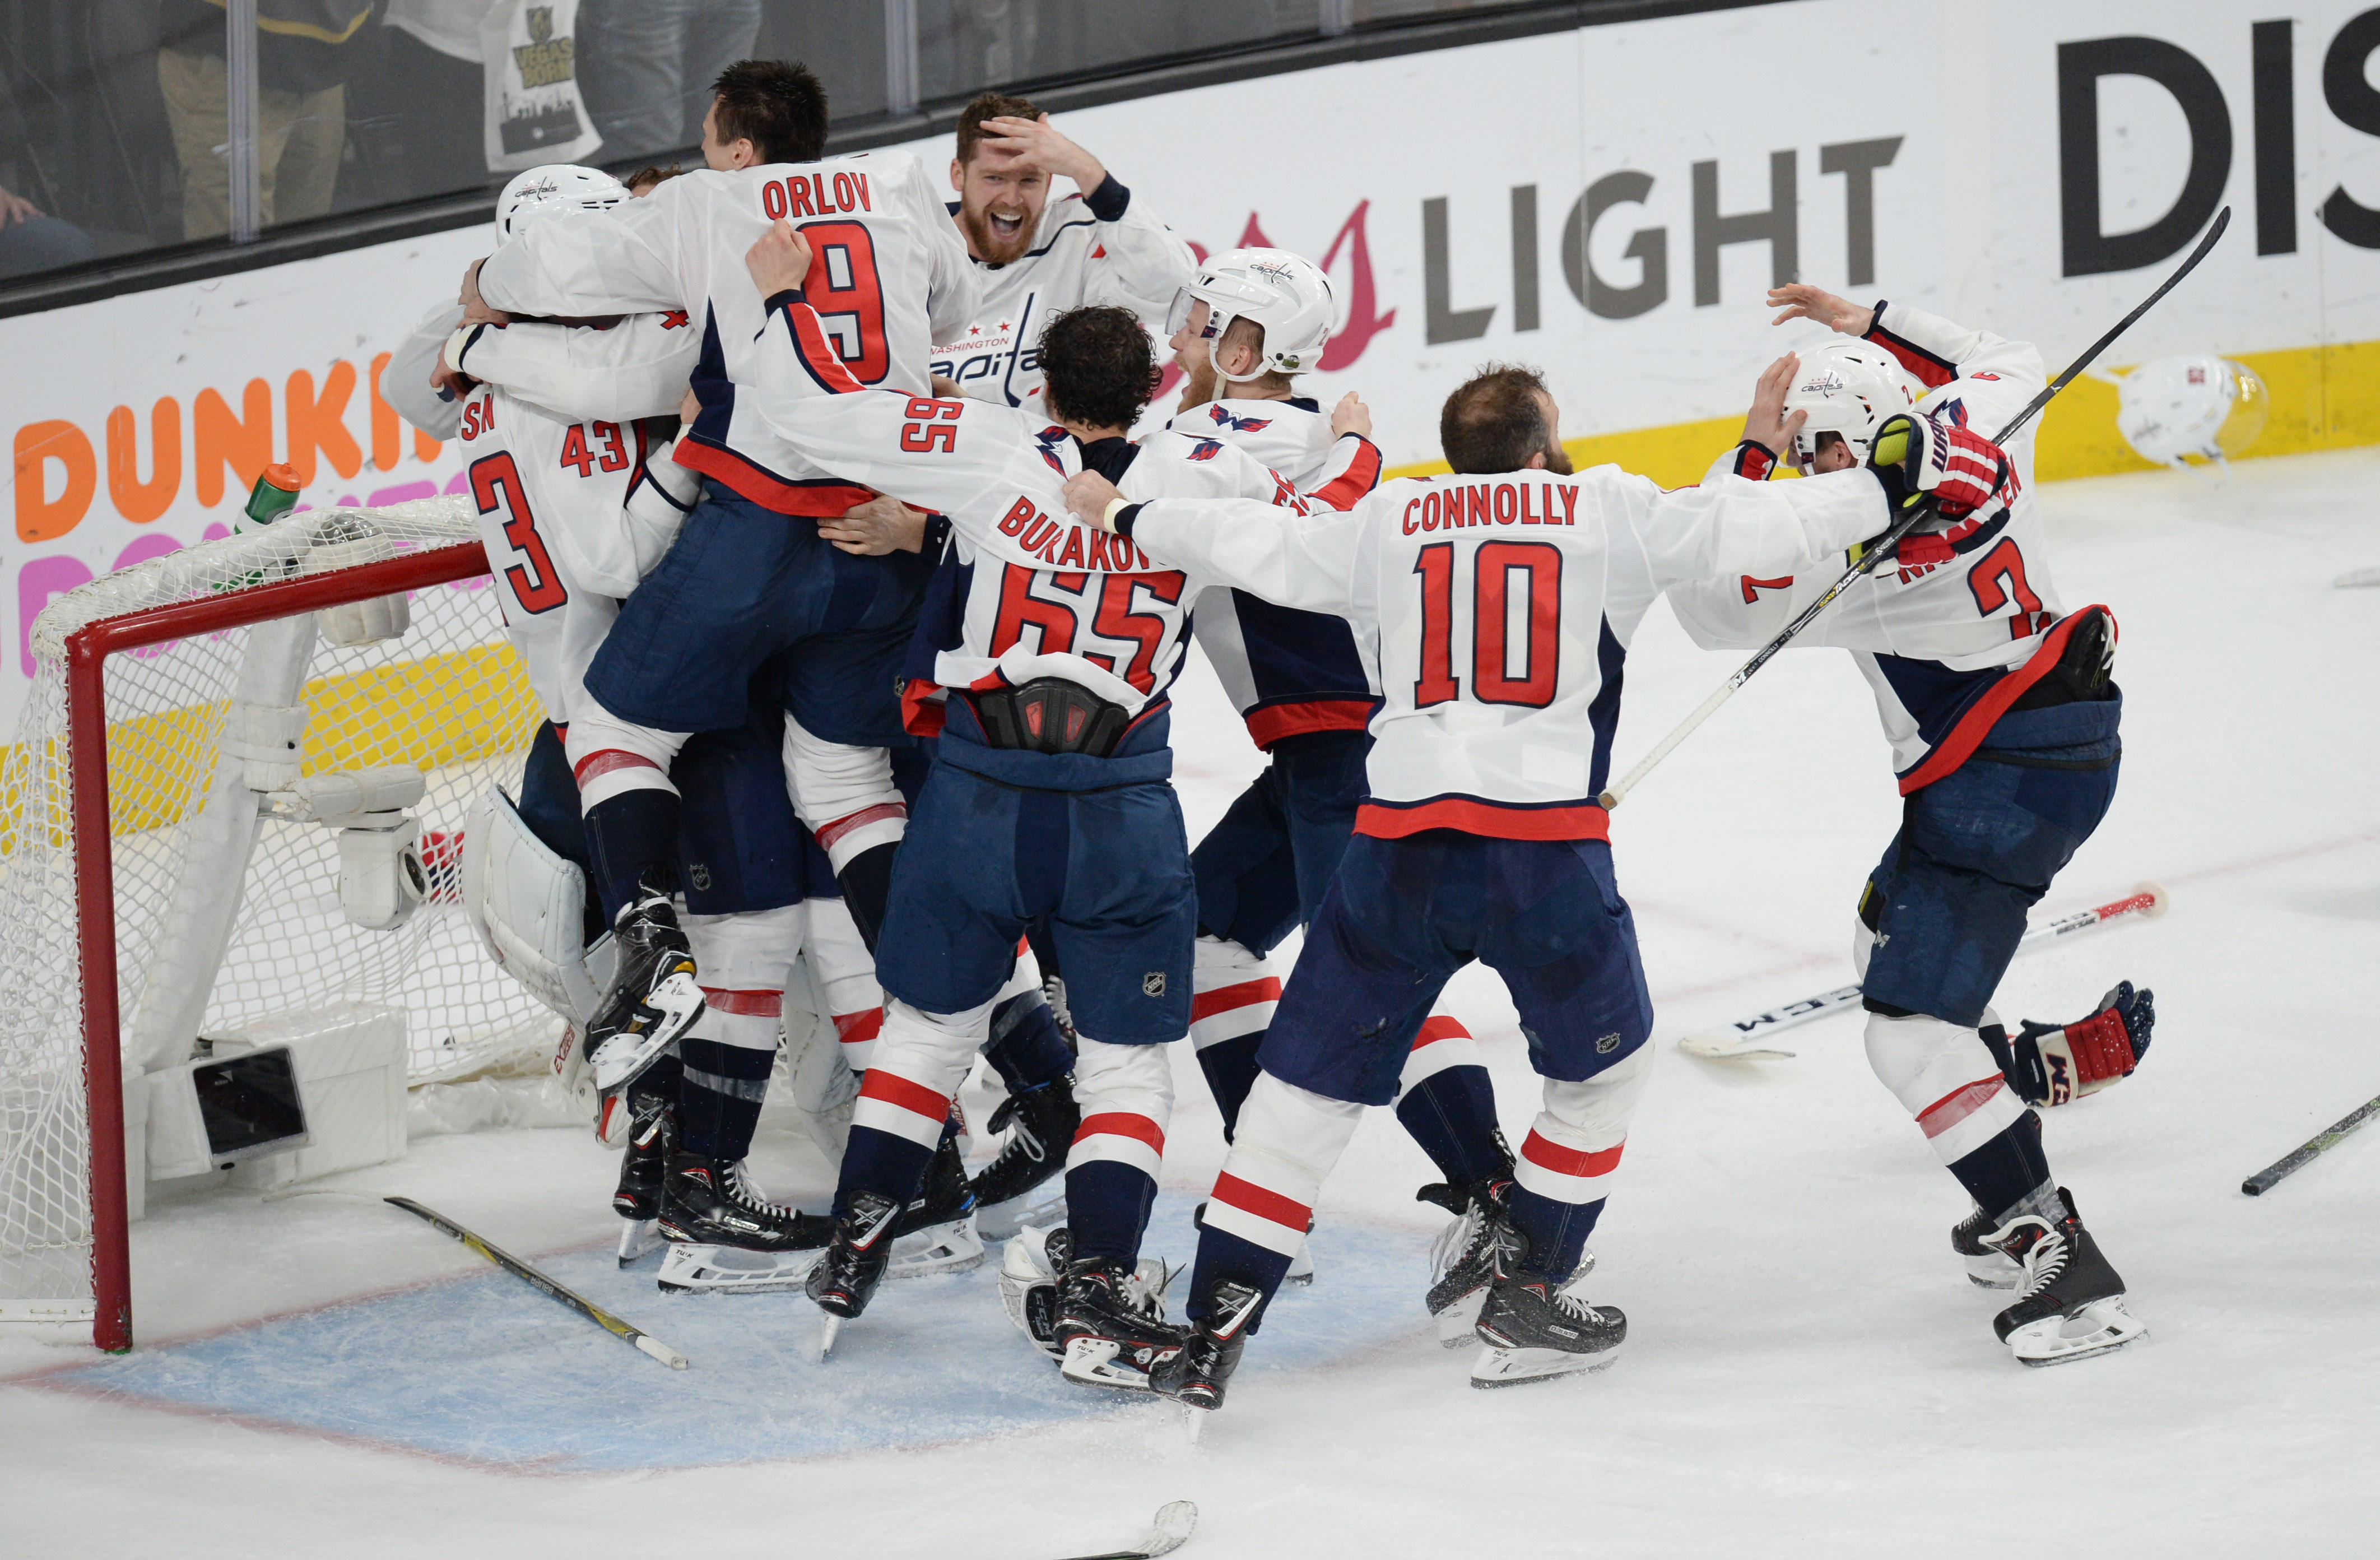 71fe23906d3 2018 Stanley Cup: Washington Capitals win vs. Golden Knights tonight ...